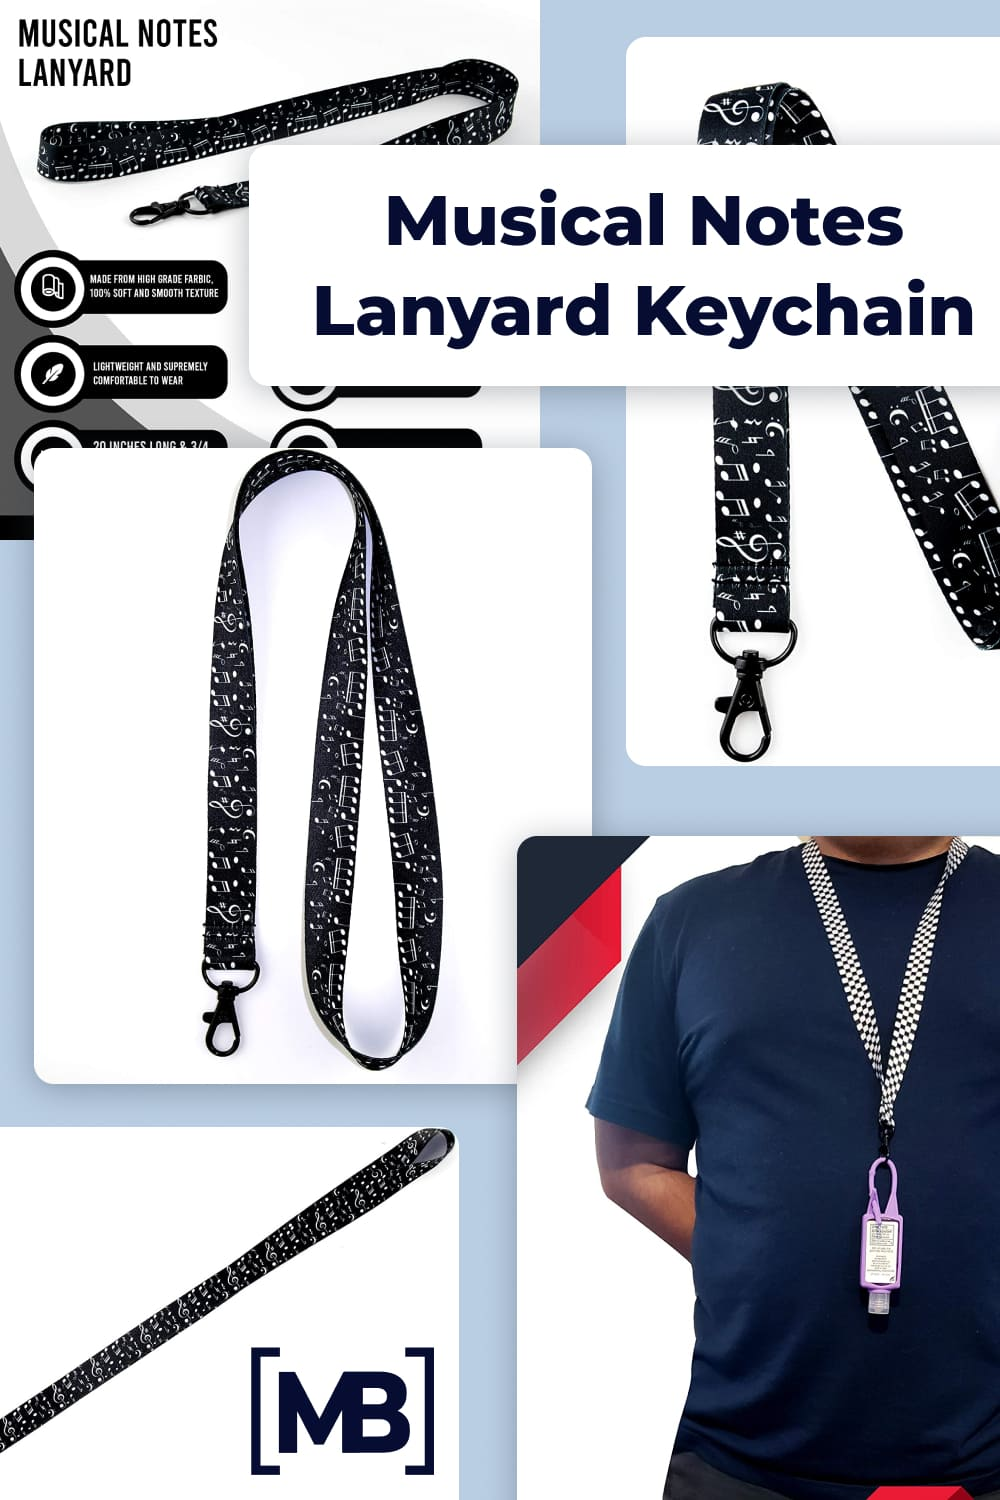 Musical notes lanyard keychain.